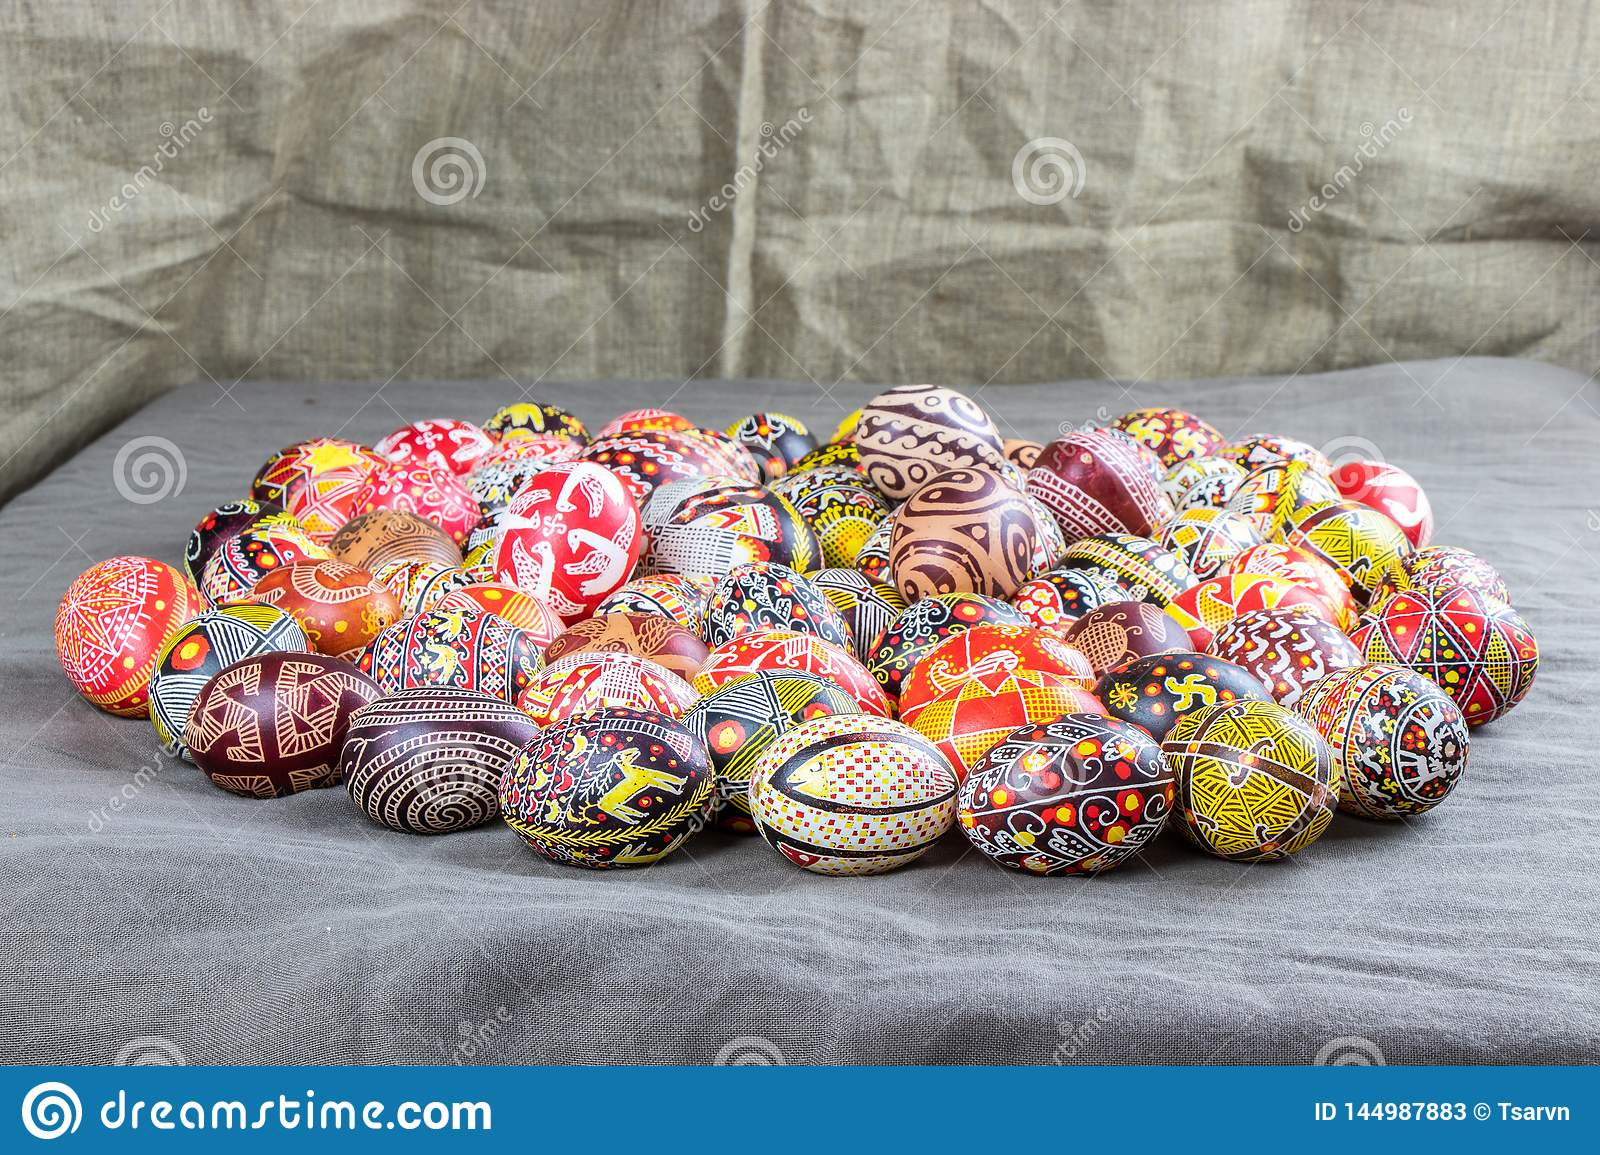 The Easter eggs from the collection The Peace of Lidia Borysenko